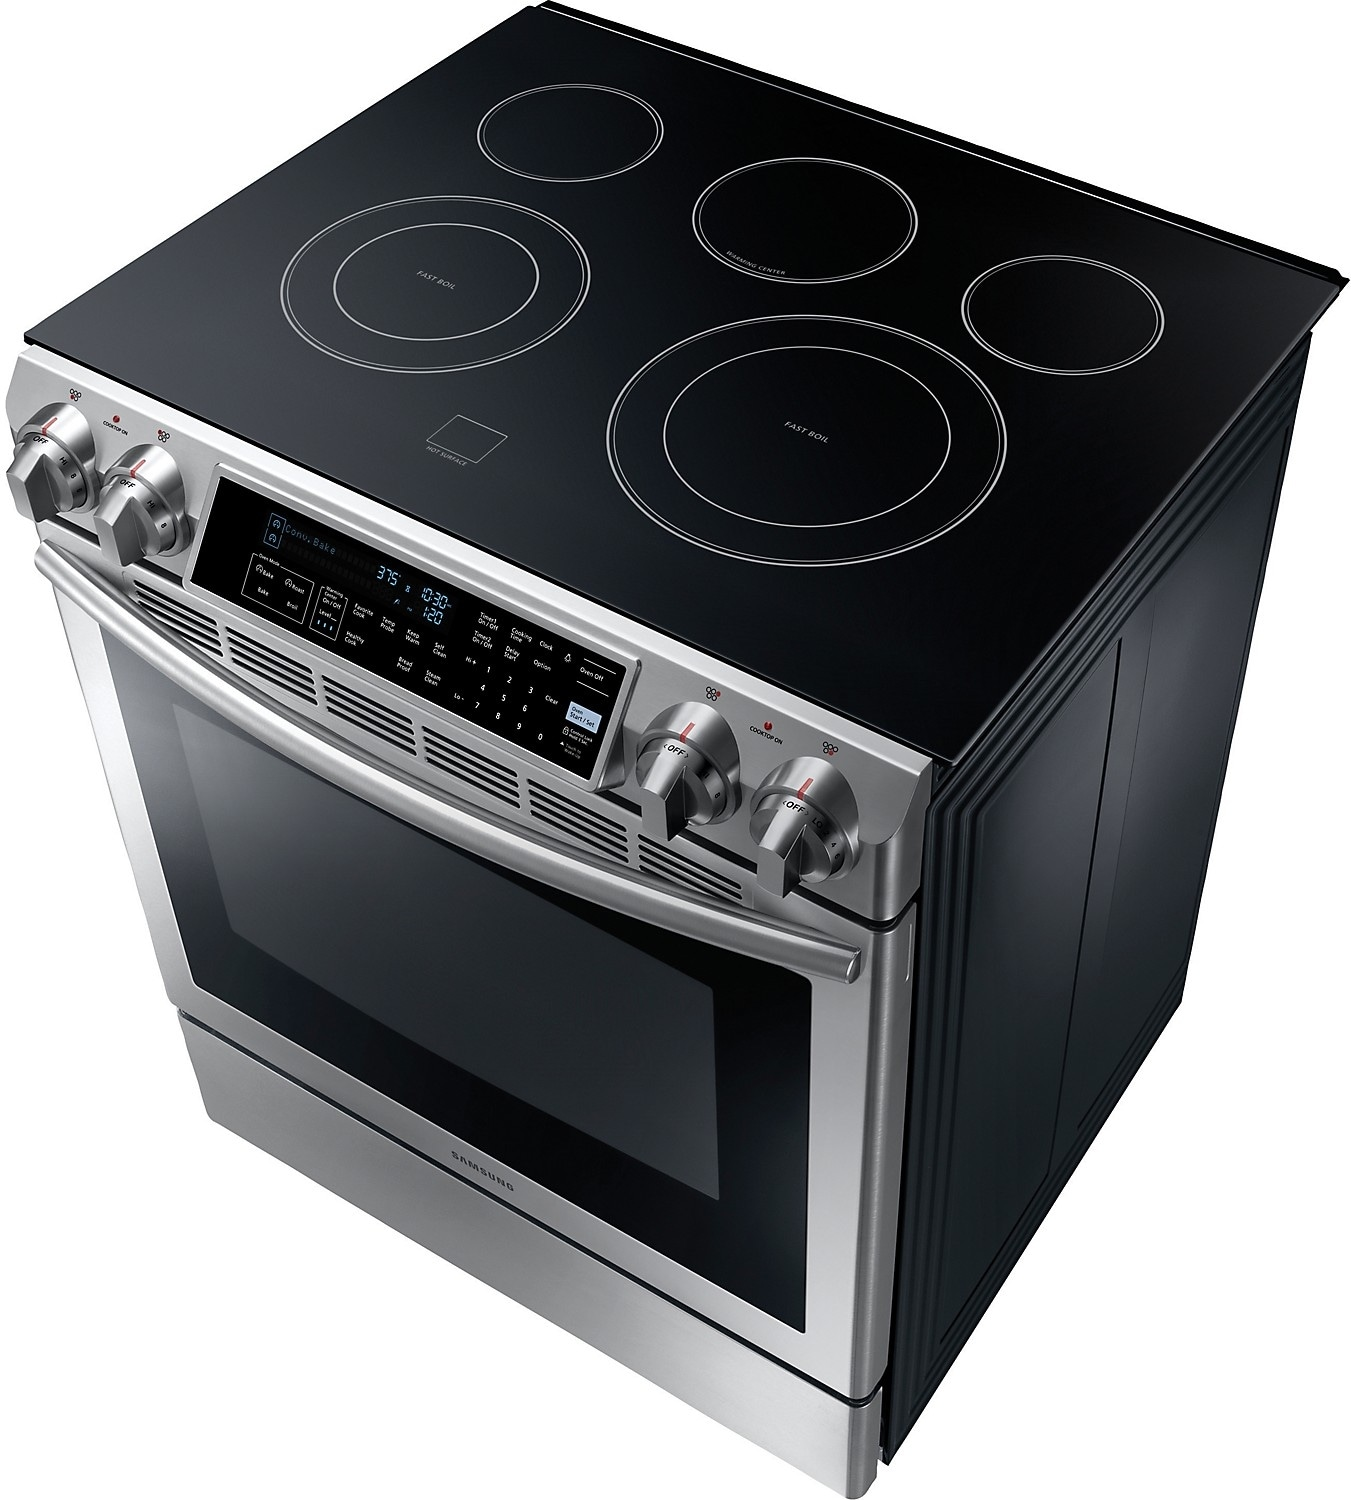 Samsung 5 8 Cu Ft Slide In Electric Range Stainless